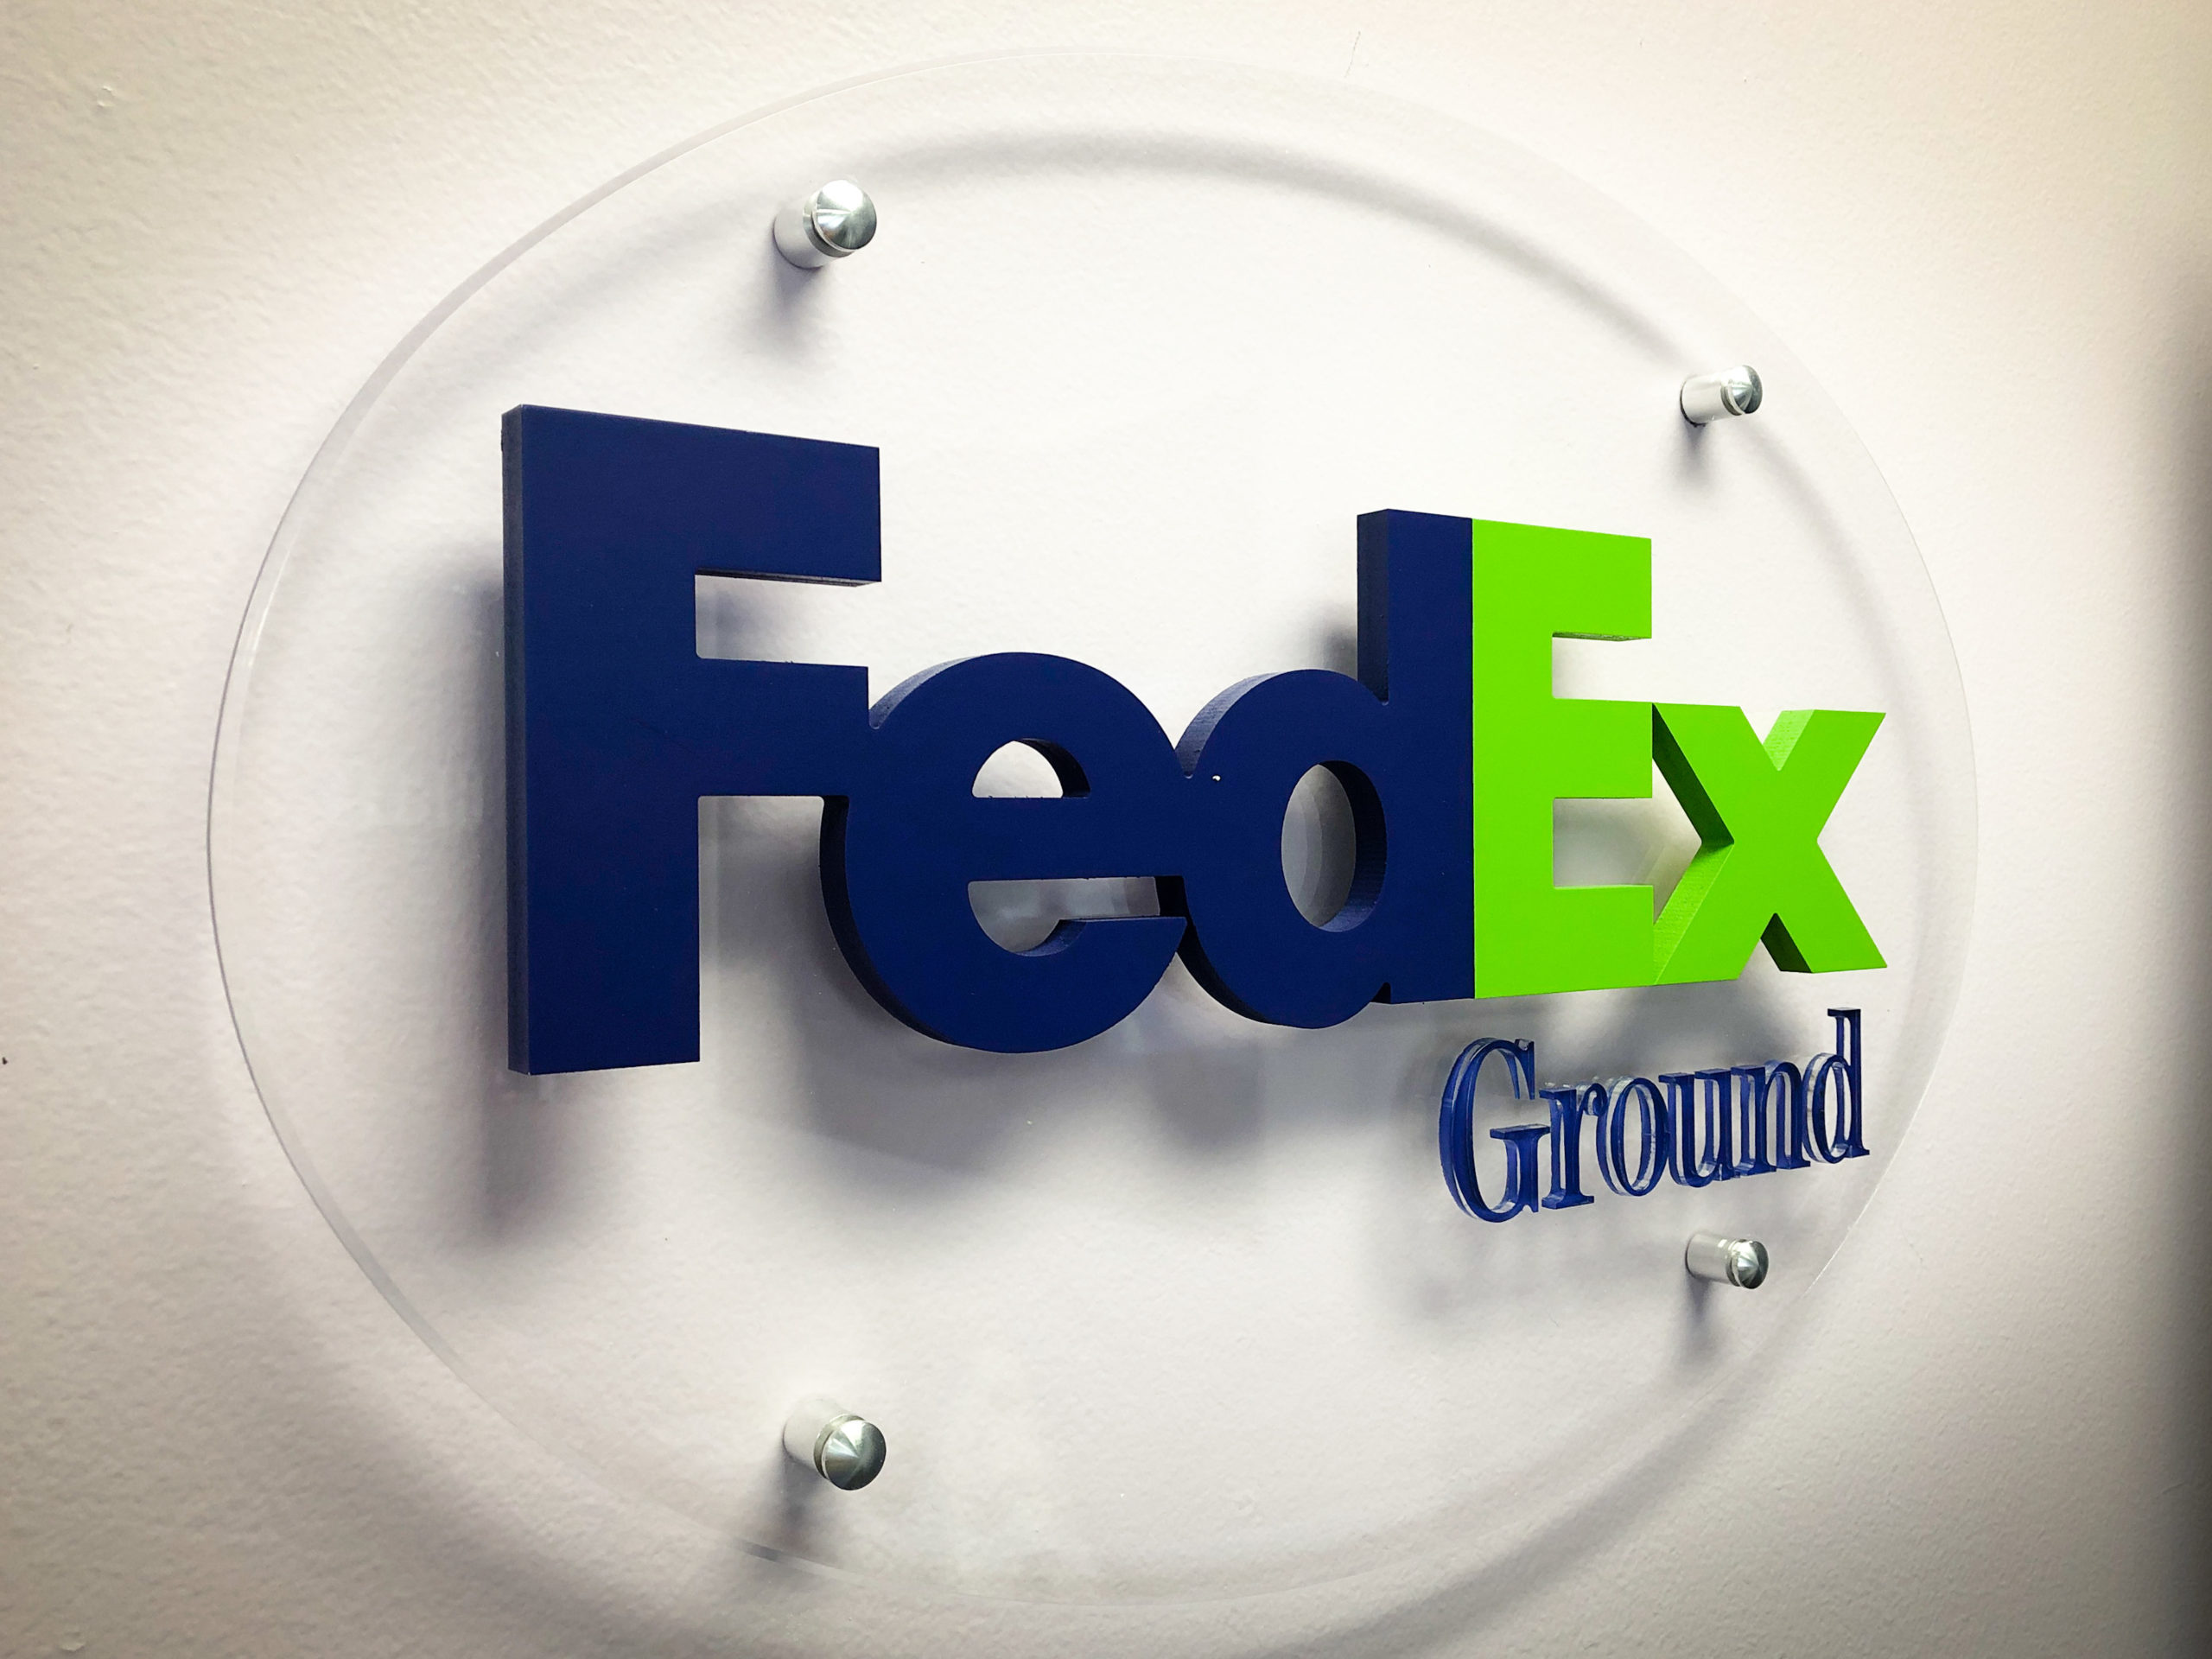 FedEx Acrylic Signs Custom Made by Your Denver Sign Company